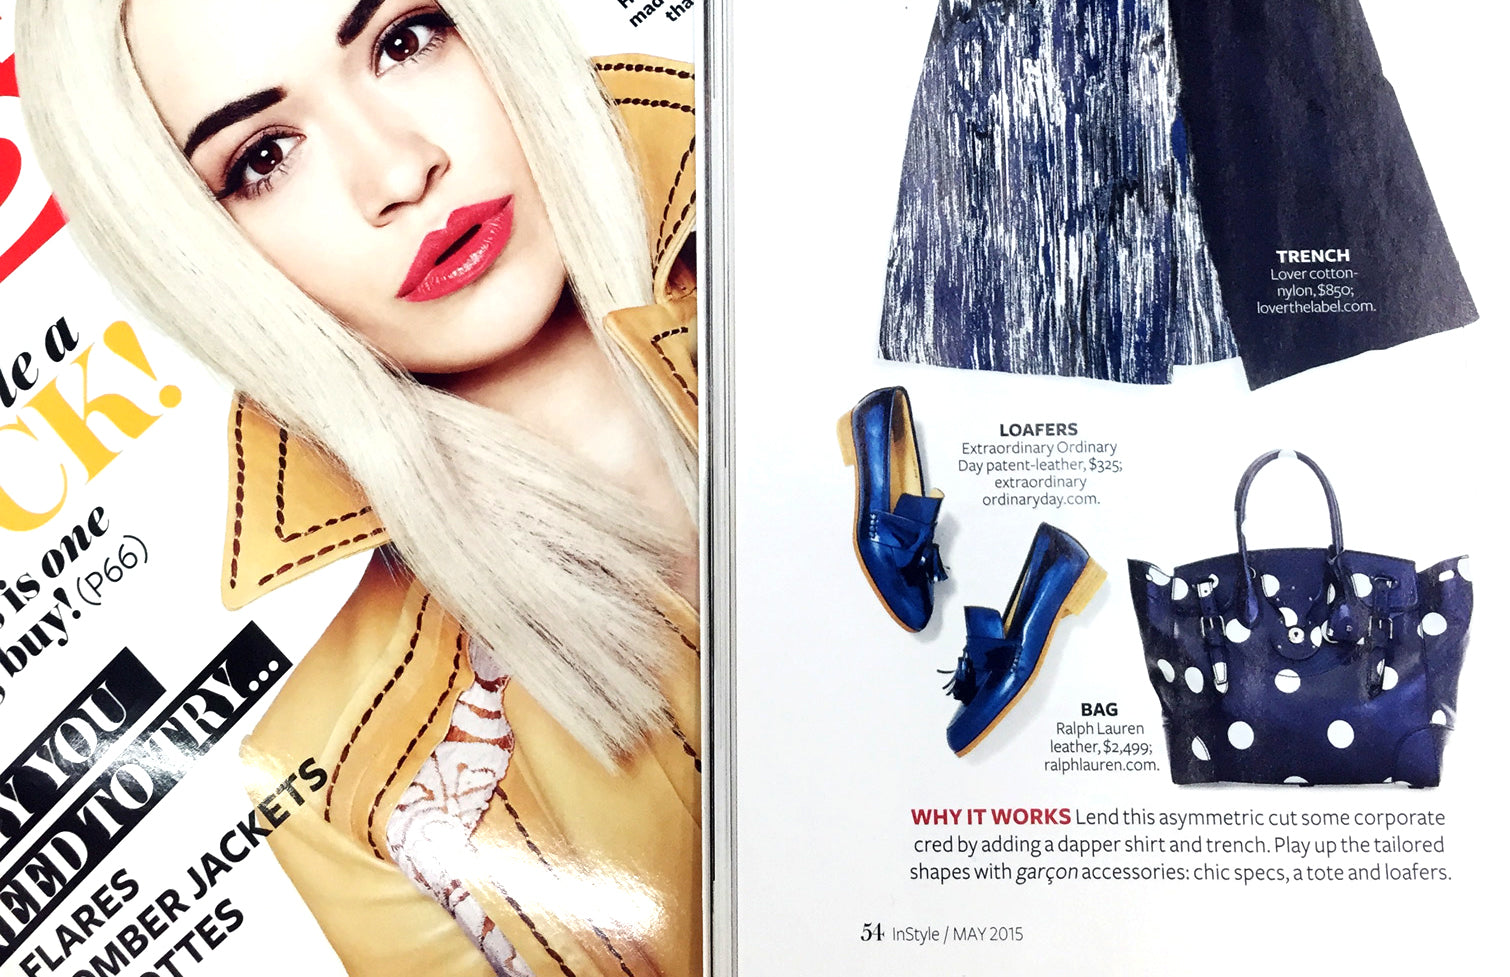 Women's Designer Leather Shoes - Ecstasy Metallic Cobalt loafers featured in InStyle magazine